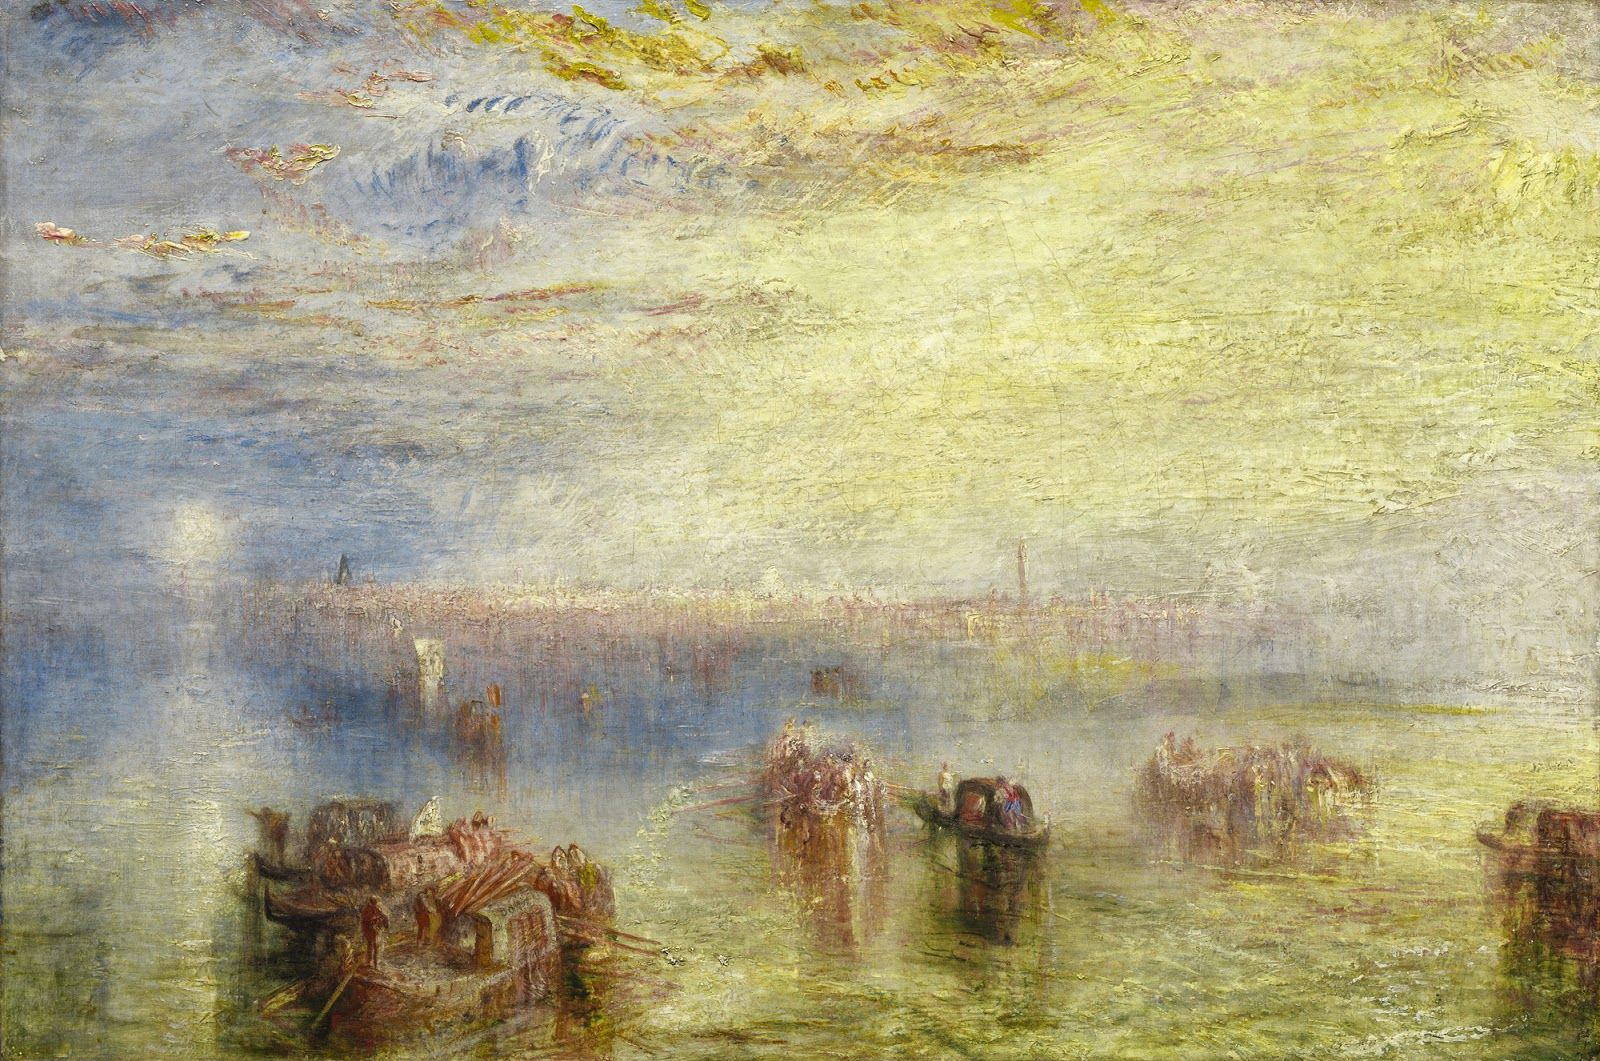 J.M.W.Turner, Approach to Venice, 1844